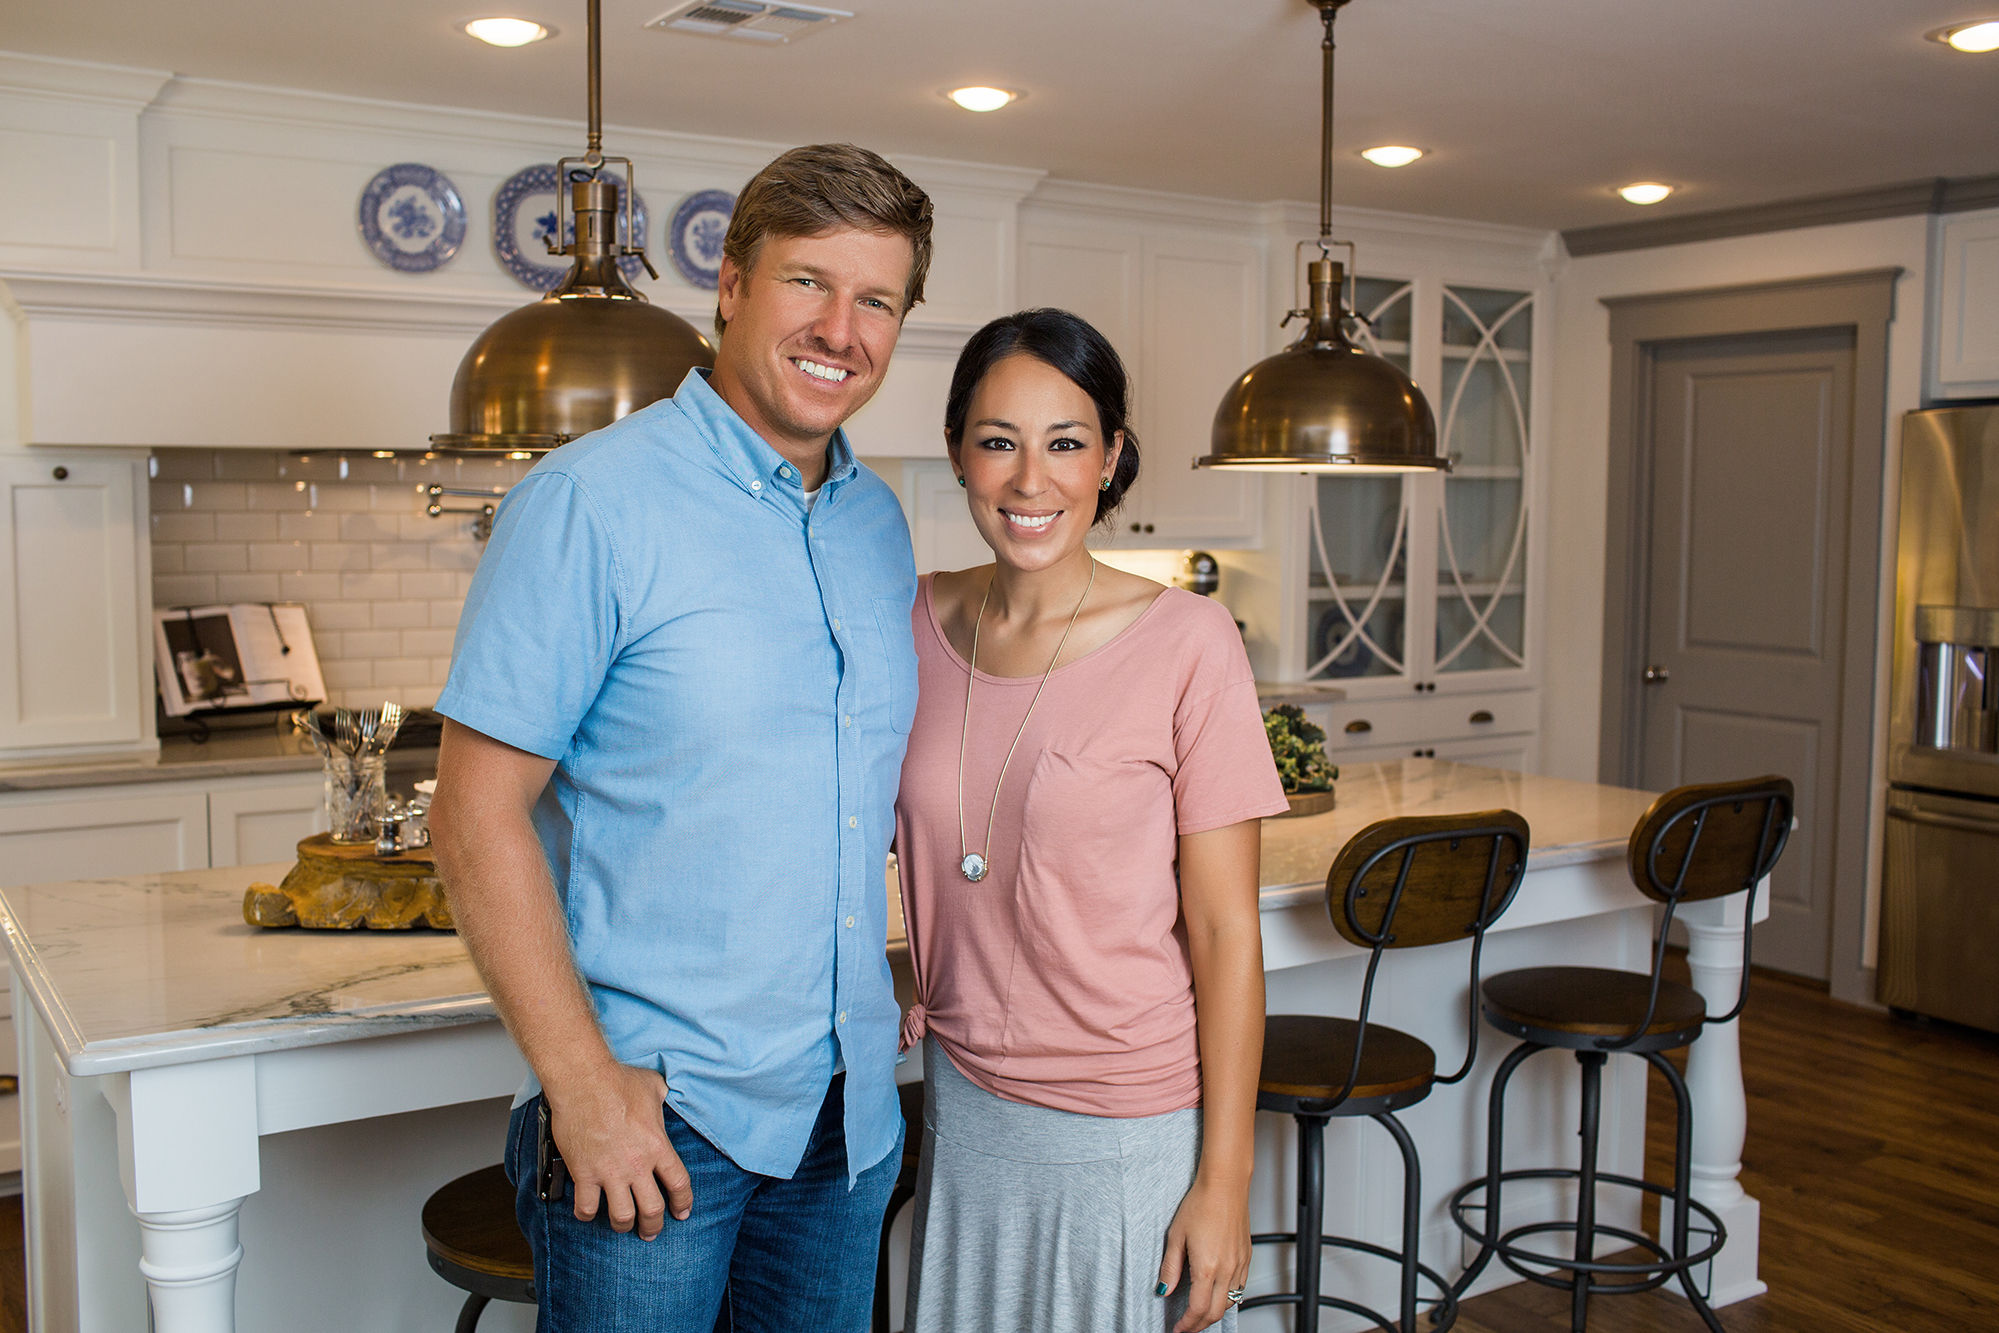 Chip and Joanna Gaines Are Speaking Out Amid Reports They've Sold Their Beloved Waco Home